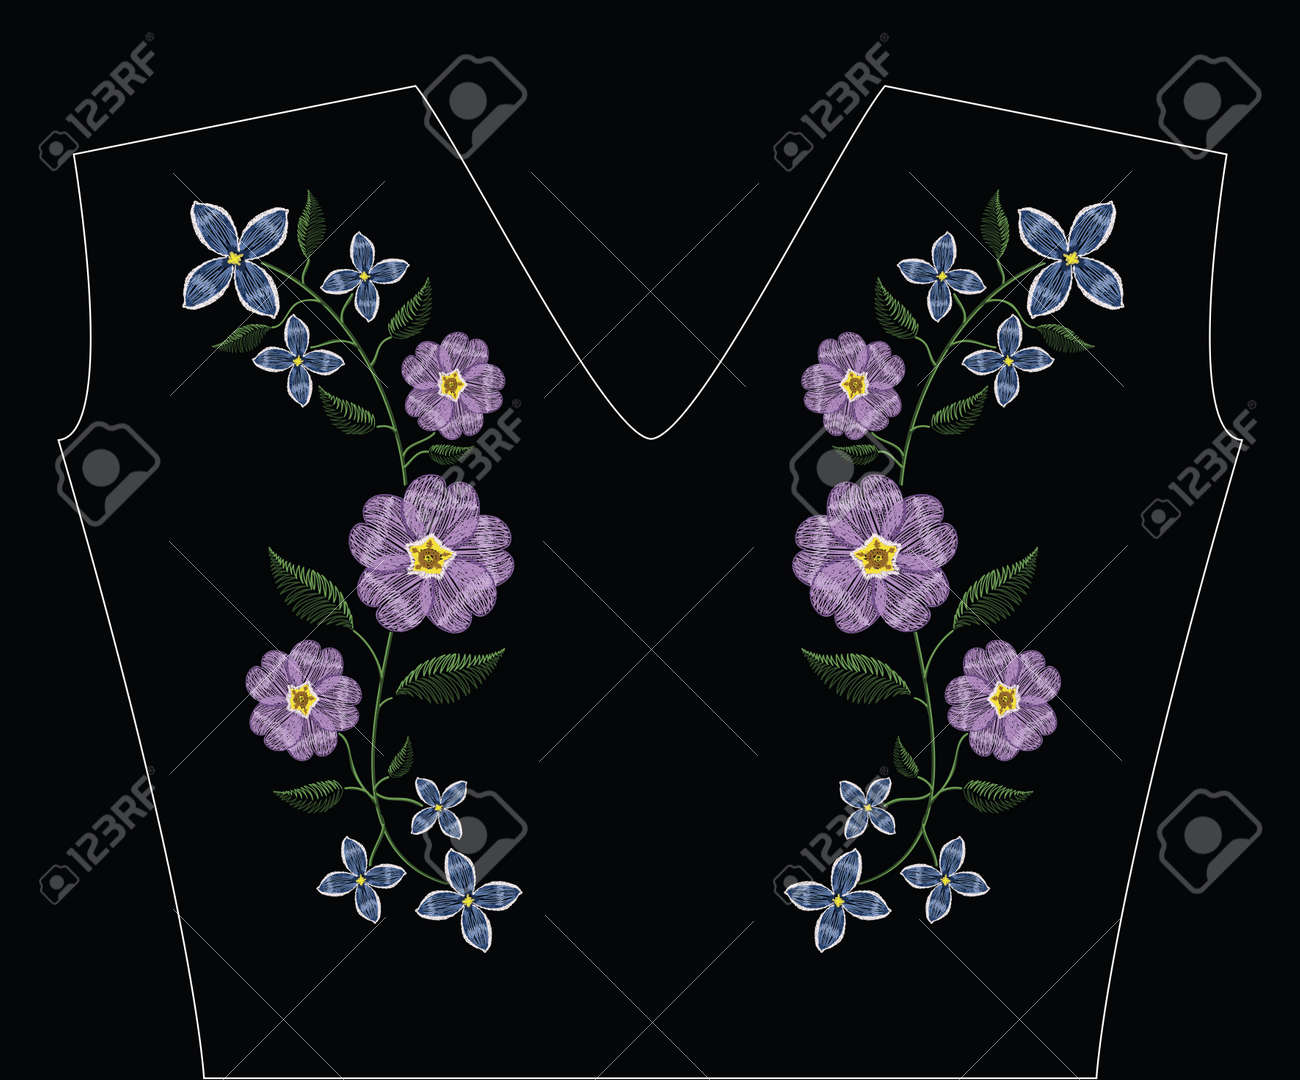 Embroidery stitches with primarose primula vulgaris and lilac flower.. Vector fashion ornament on black background for traditional floral decoration. Pattern for textile and fabrics. Print for textile. - 82742431